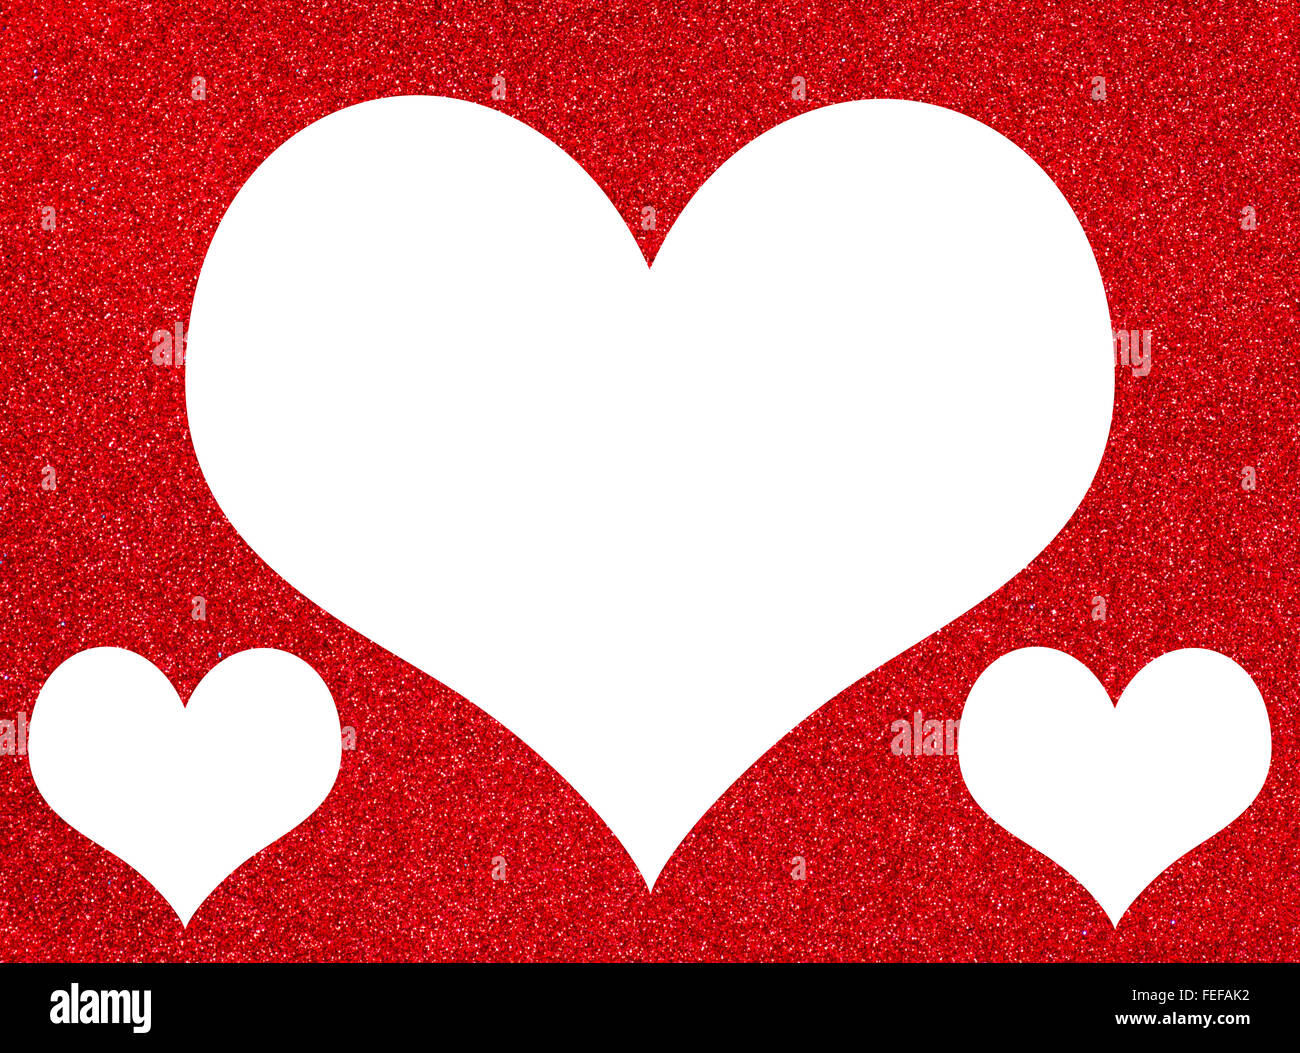 One Large Heart And Two Small On A Red Textured Glitter Background